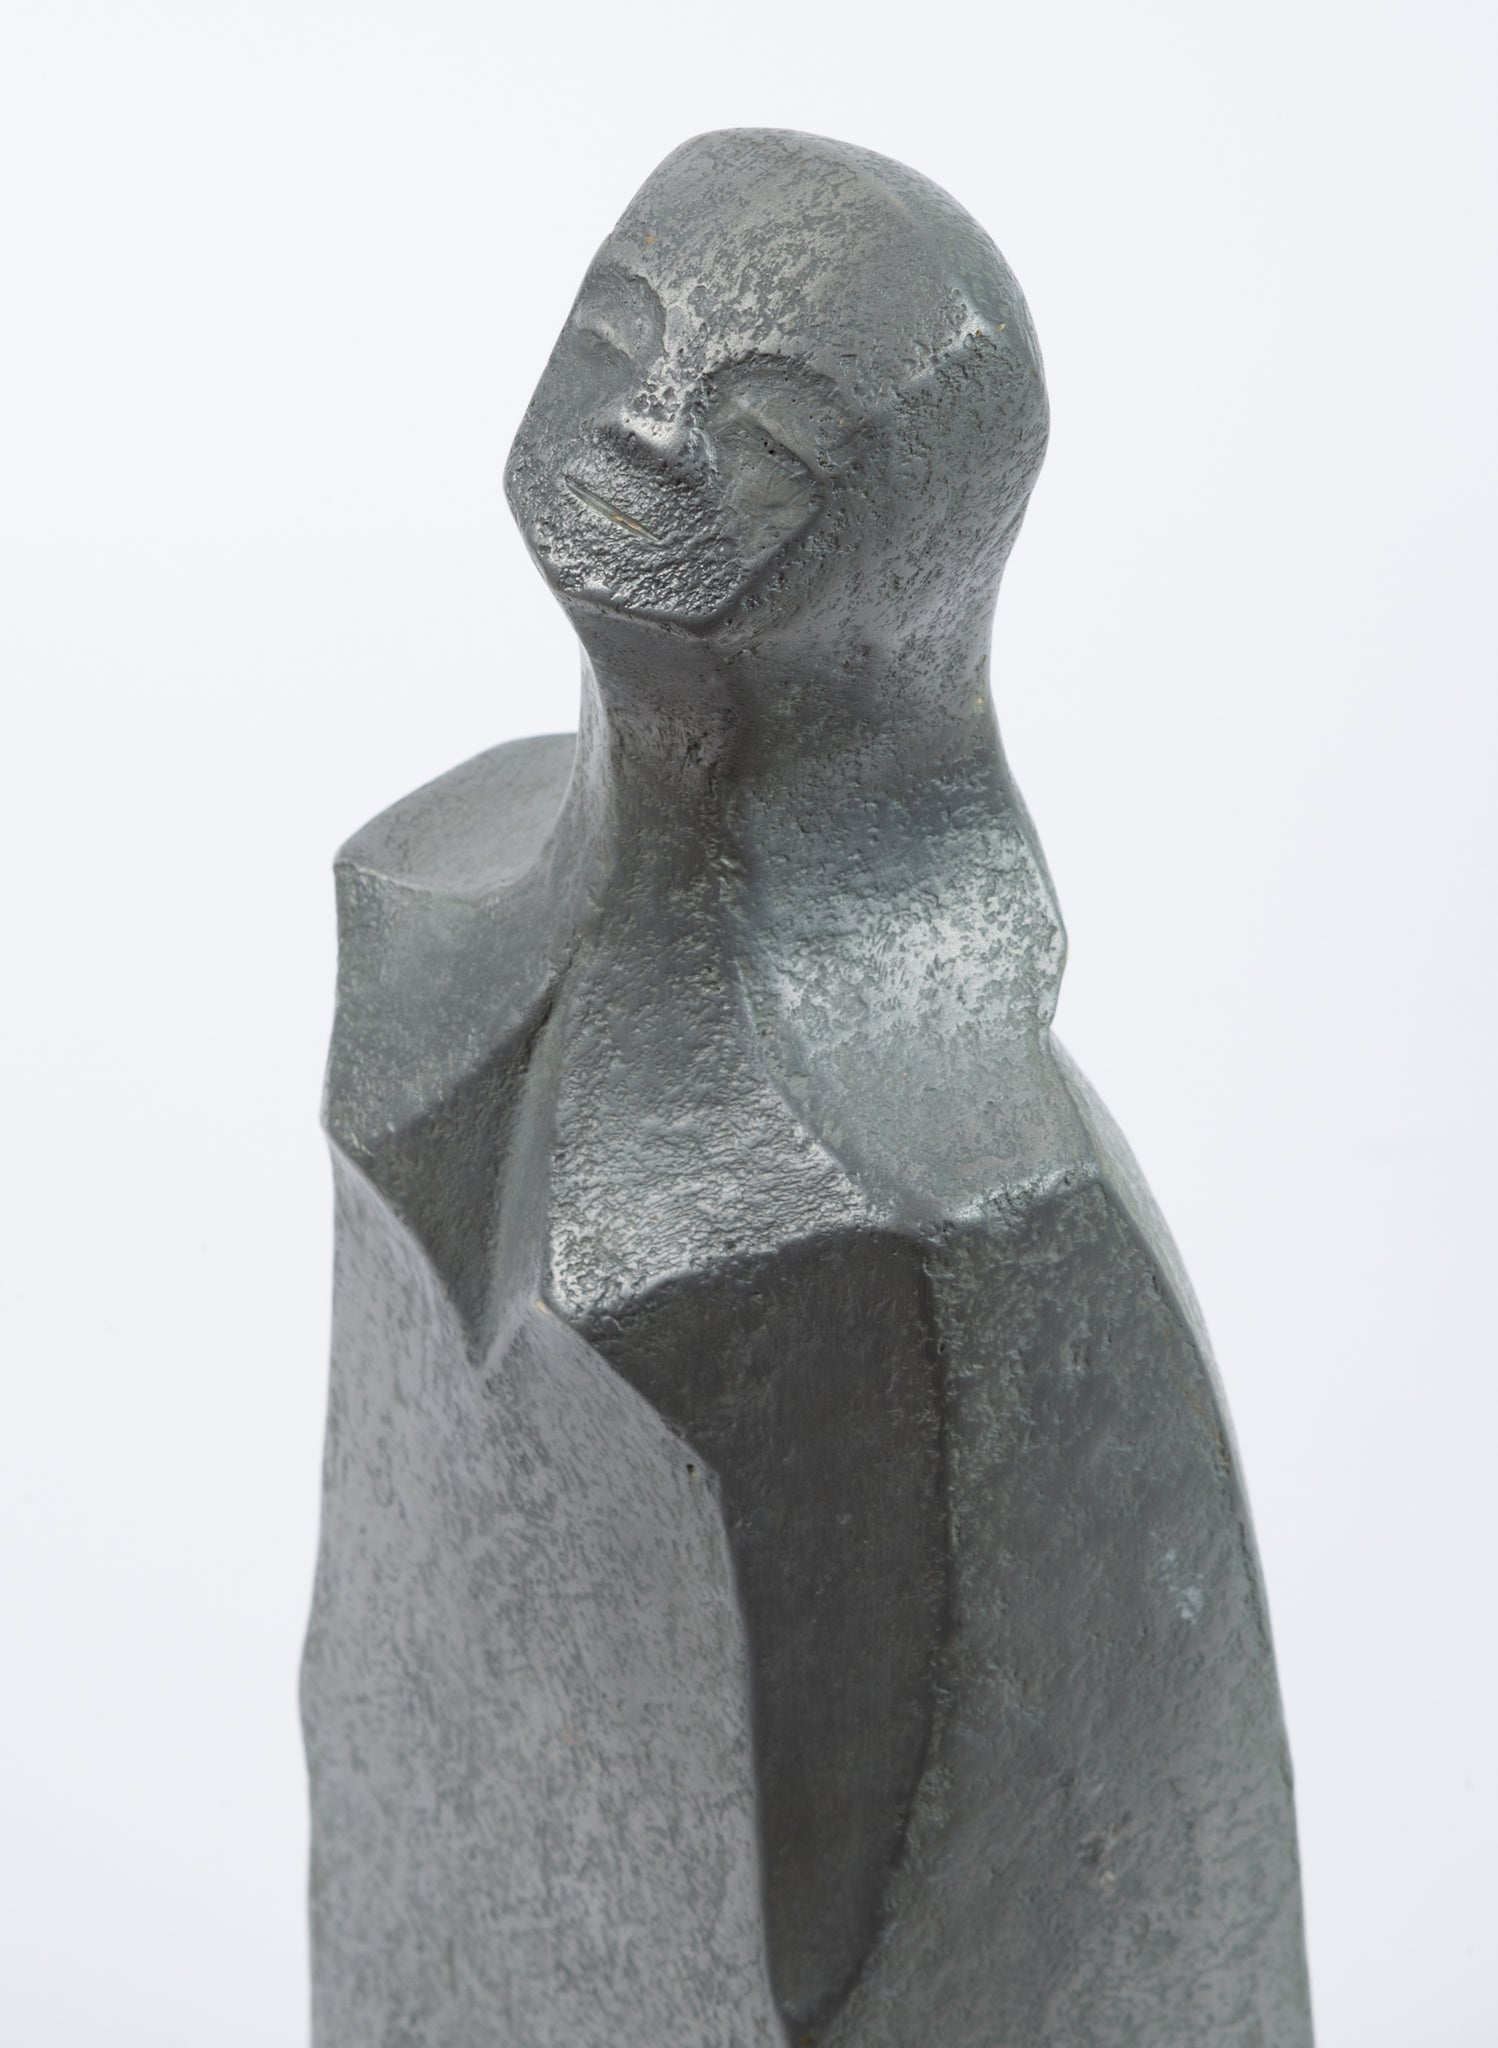 Sculpture of Tall Woman by Alexa Acuña